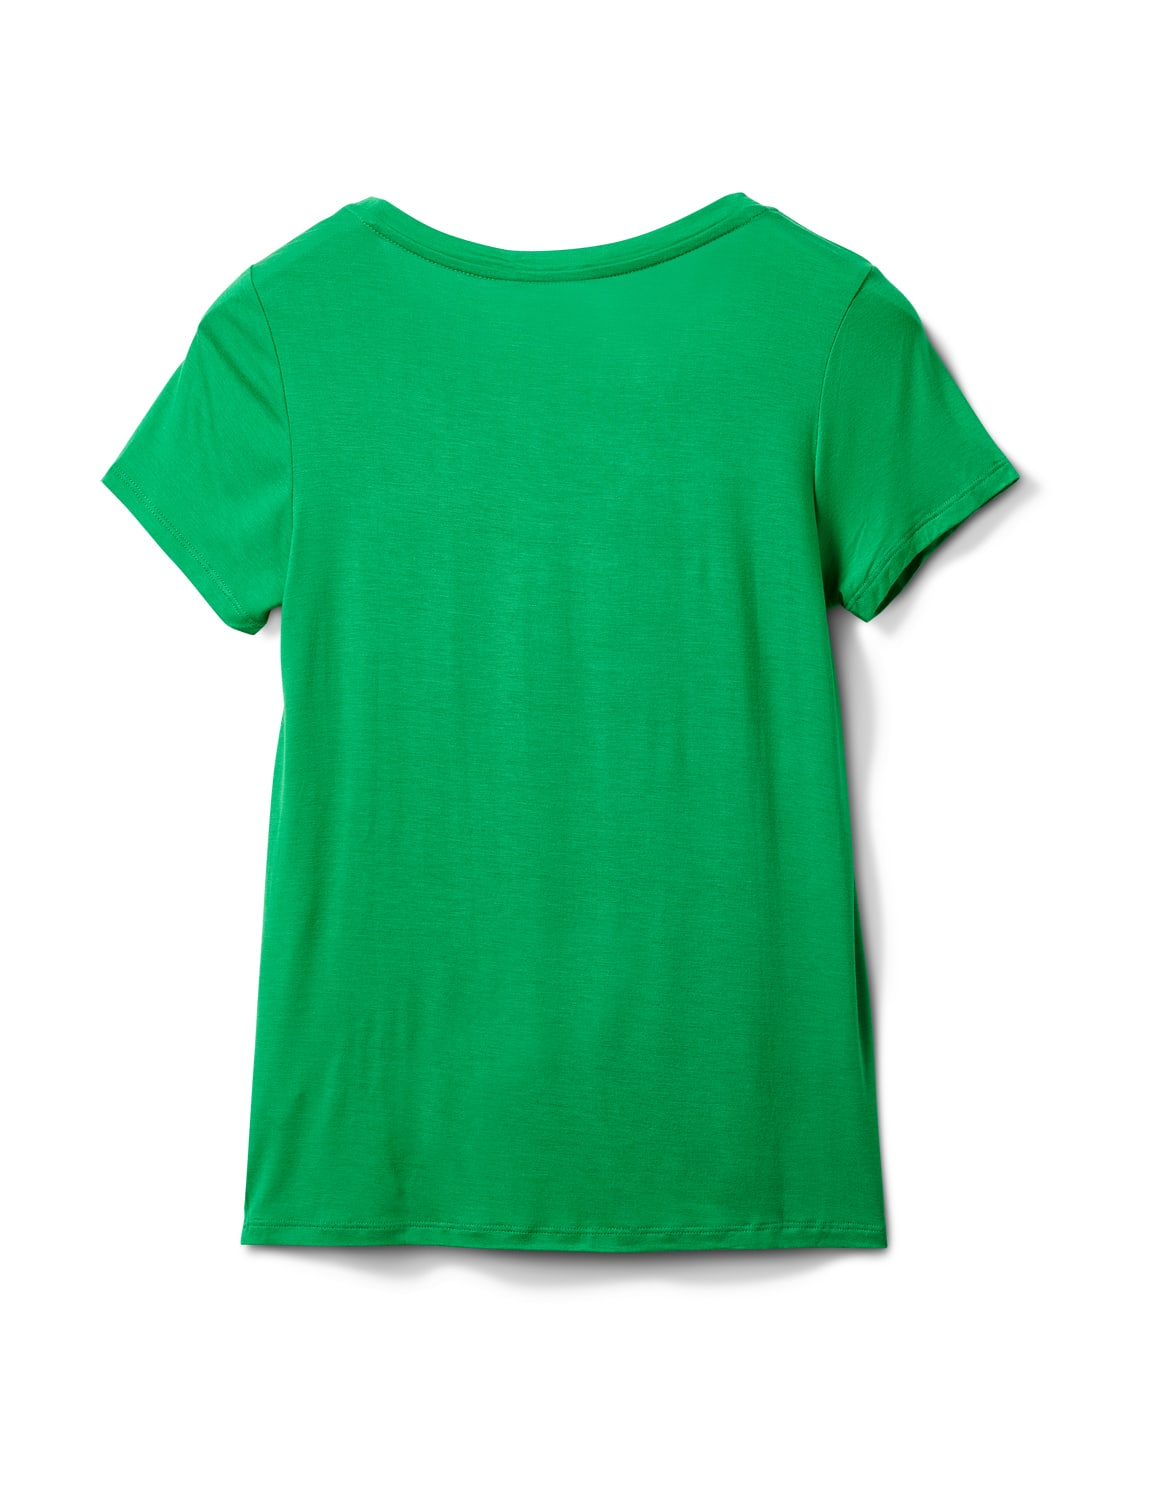 Rayon Span V-Neck Tee - Kelly Green - Back